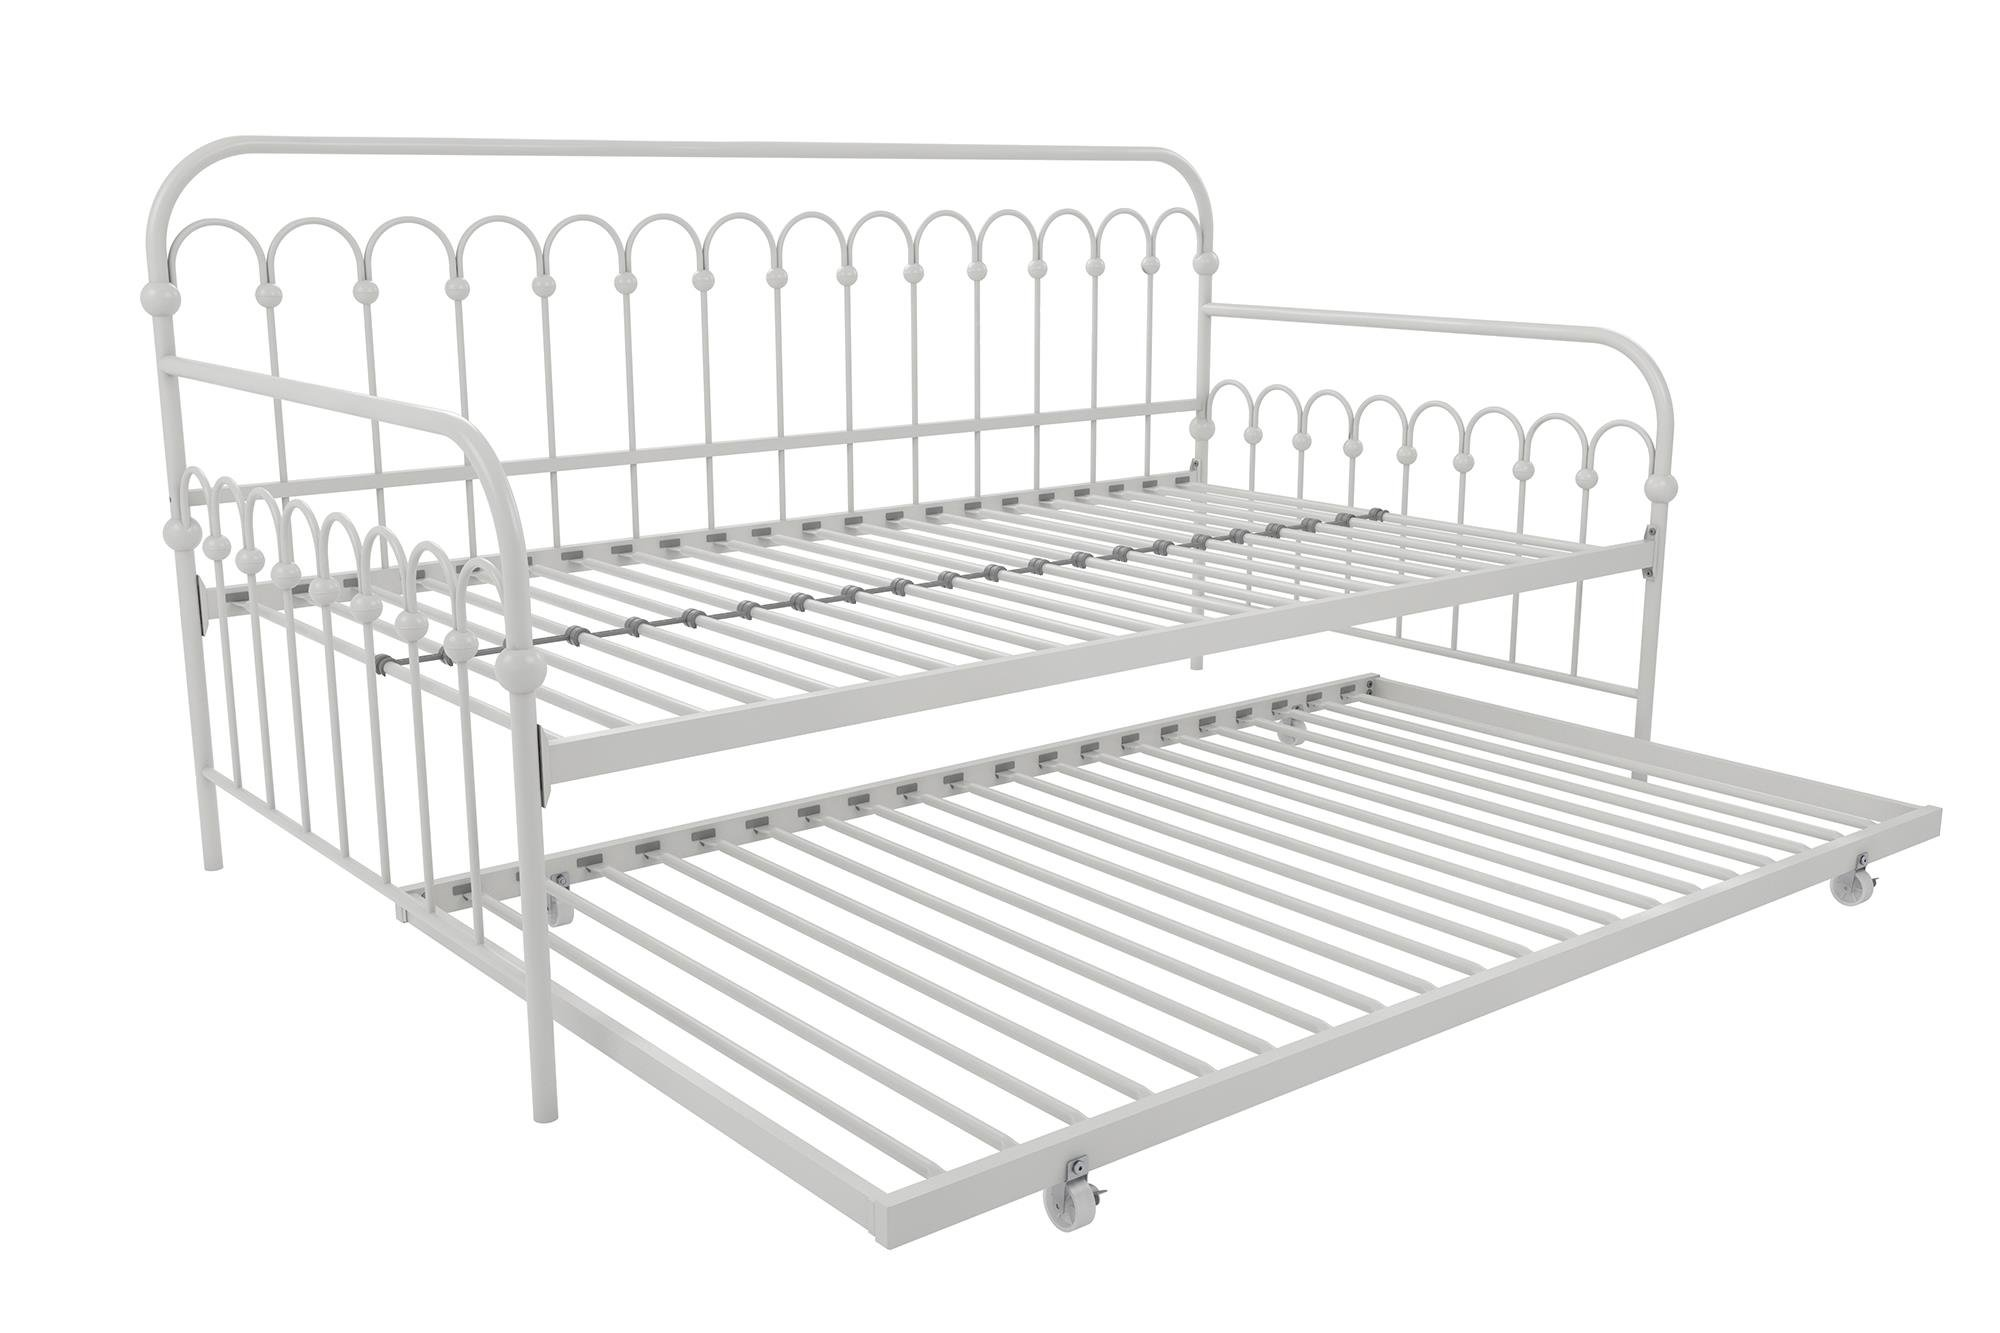 Novogratz Bright Pop Twin Metal Daybed and Trundle, Stylish & Multifunctional, Built-in Casters, White